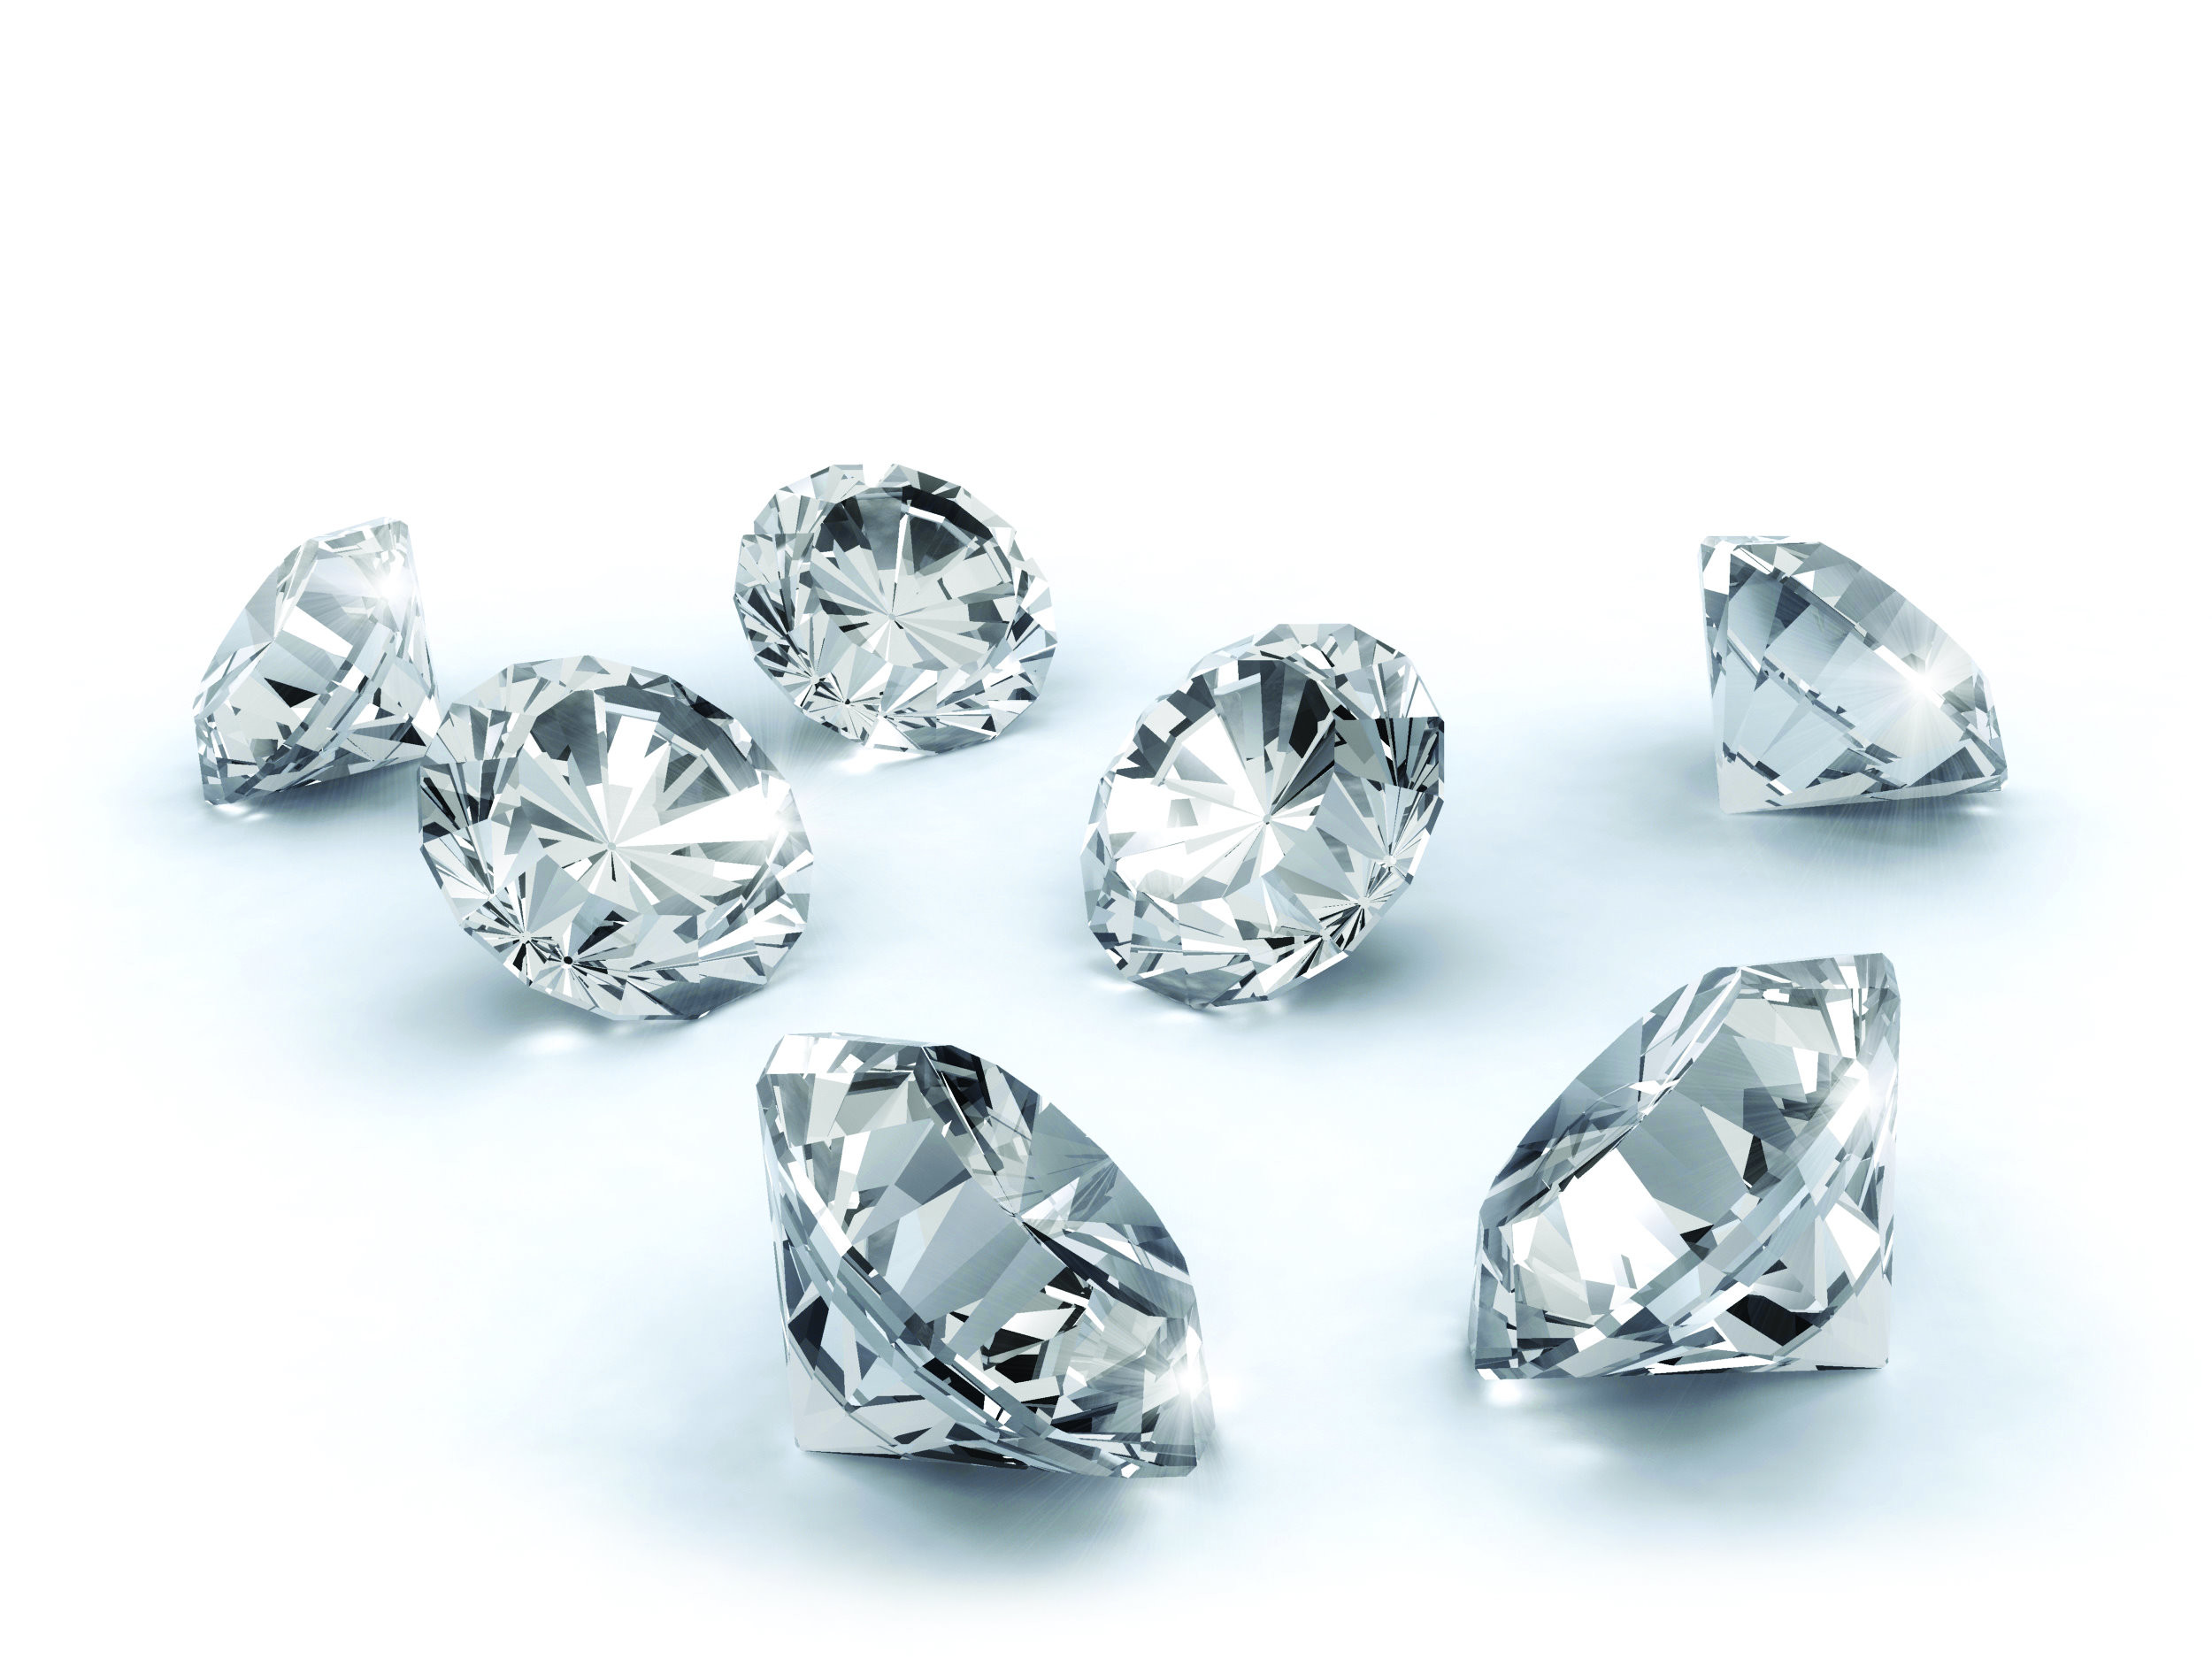 2500x1875 0 Diamonds Wallpaper Hd ANDINO JEWELLERY Diamonds Wallpaper for PC Full HD  Pictures